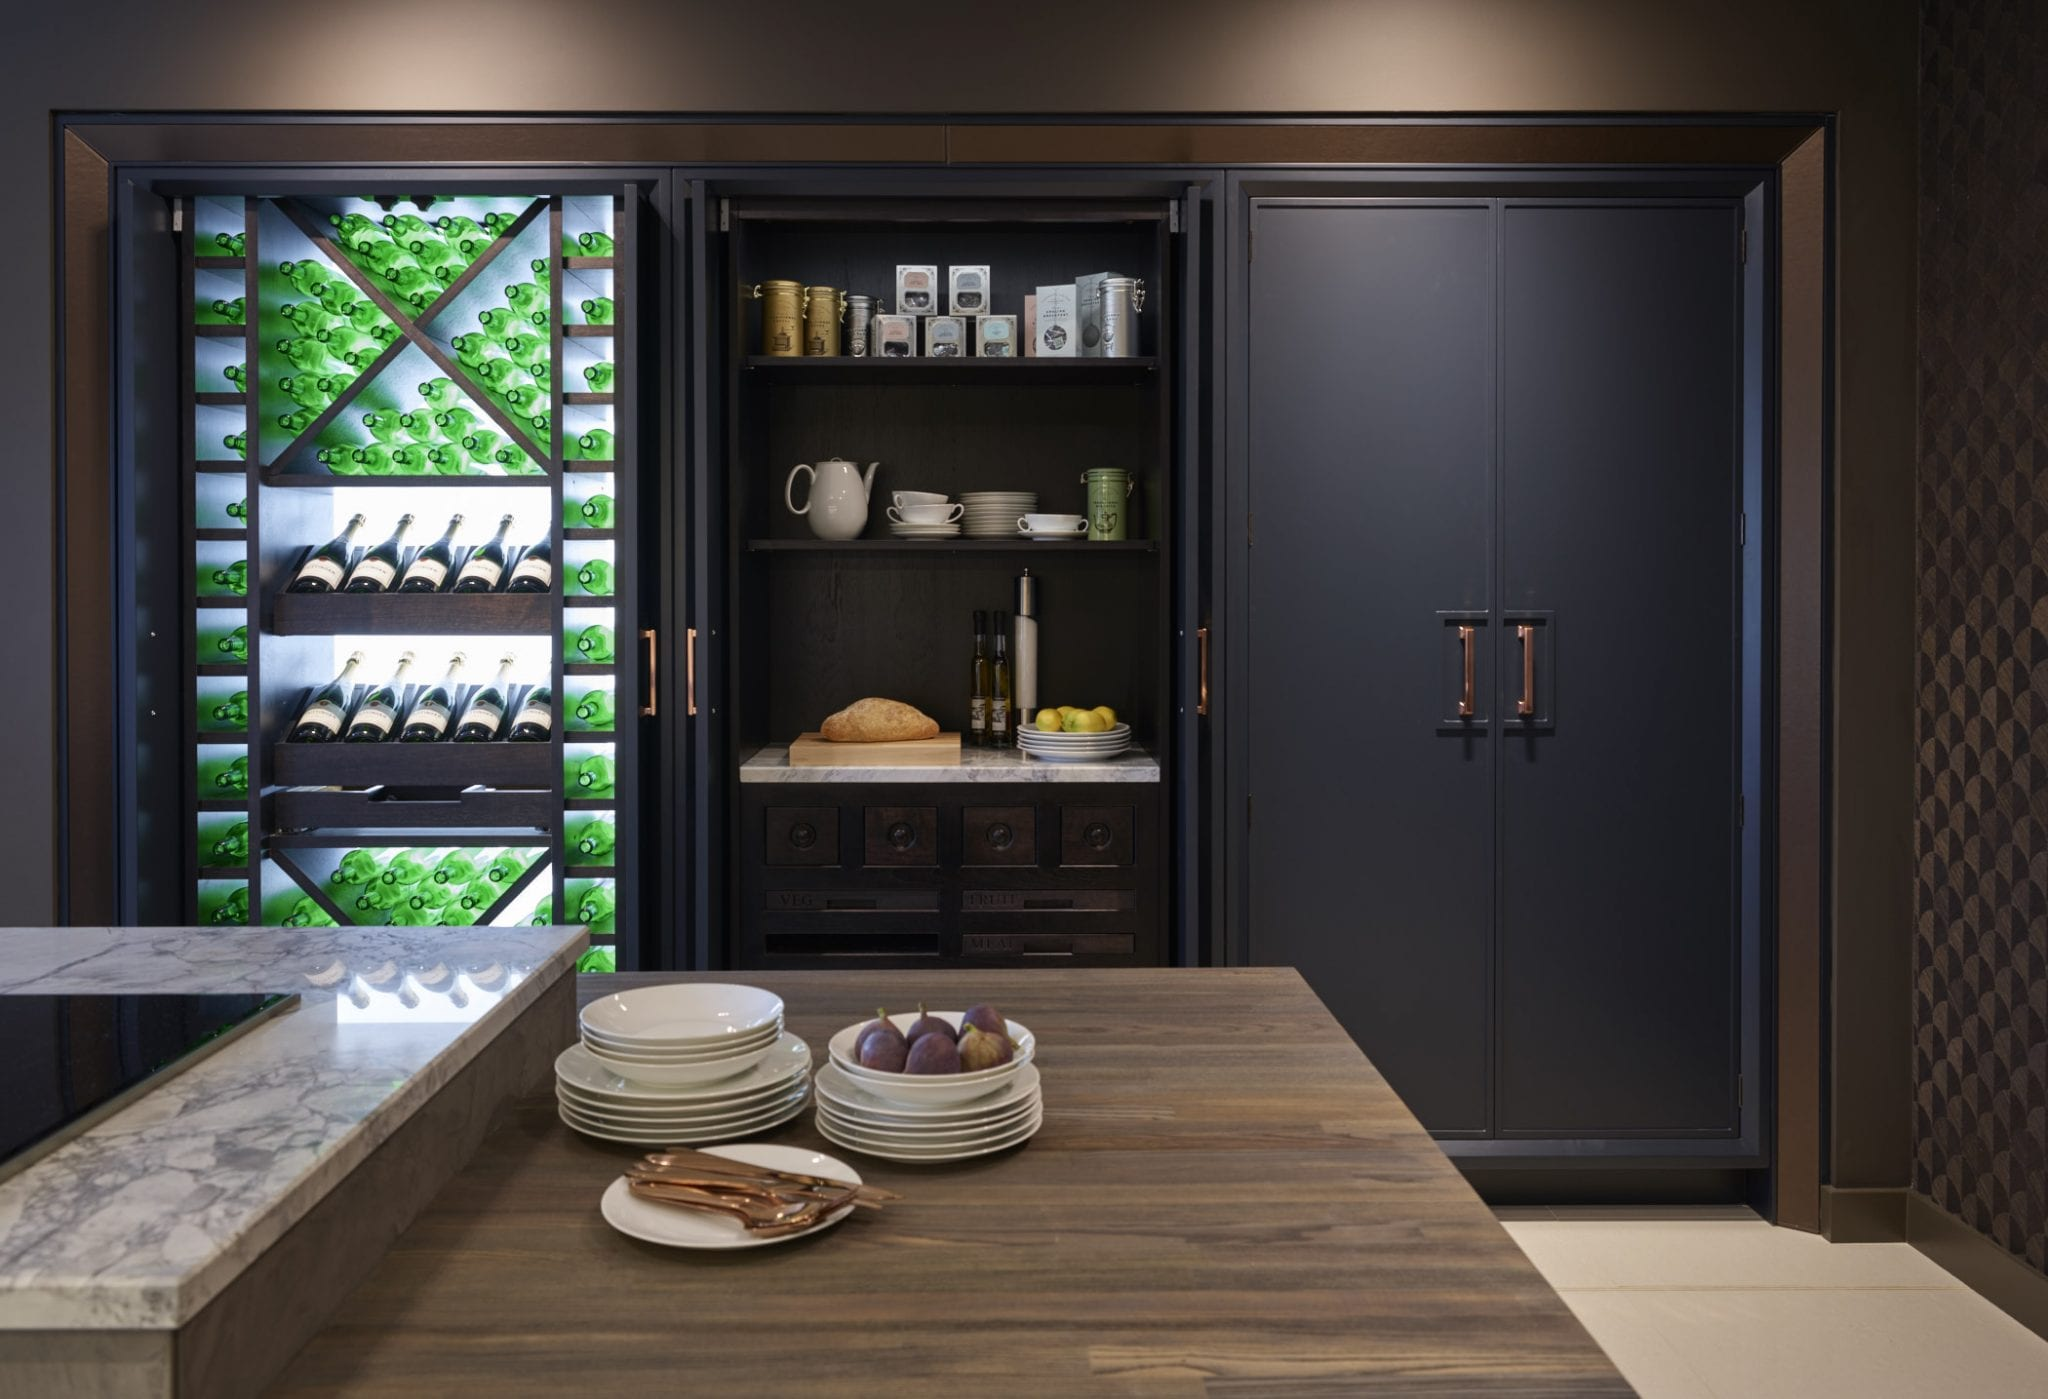 Planning Your Kitchen Storage - How To Get It Right